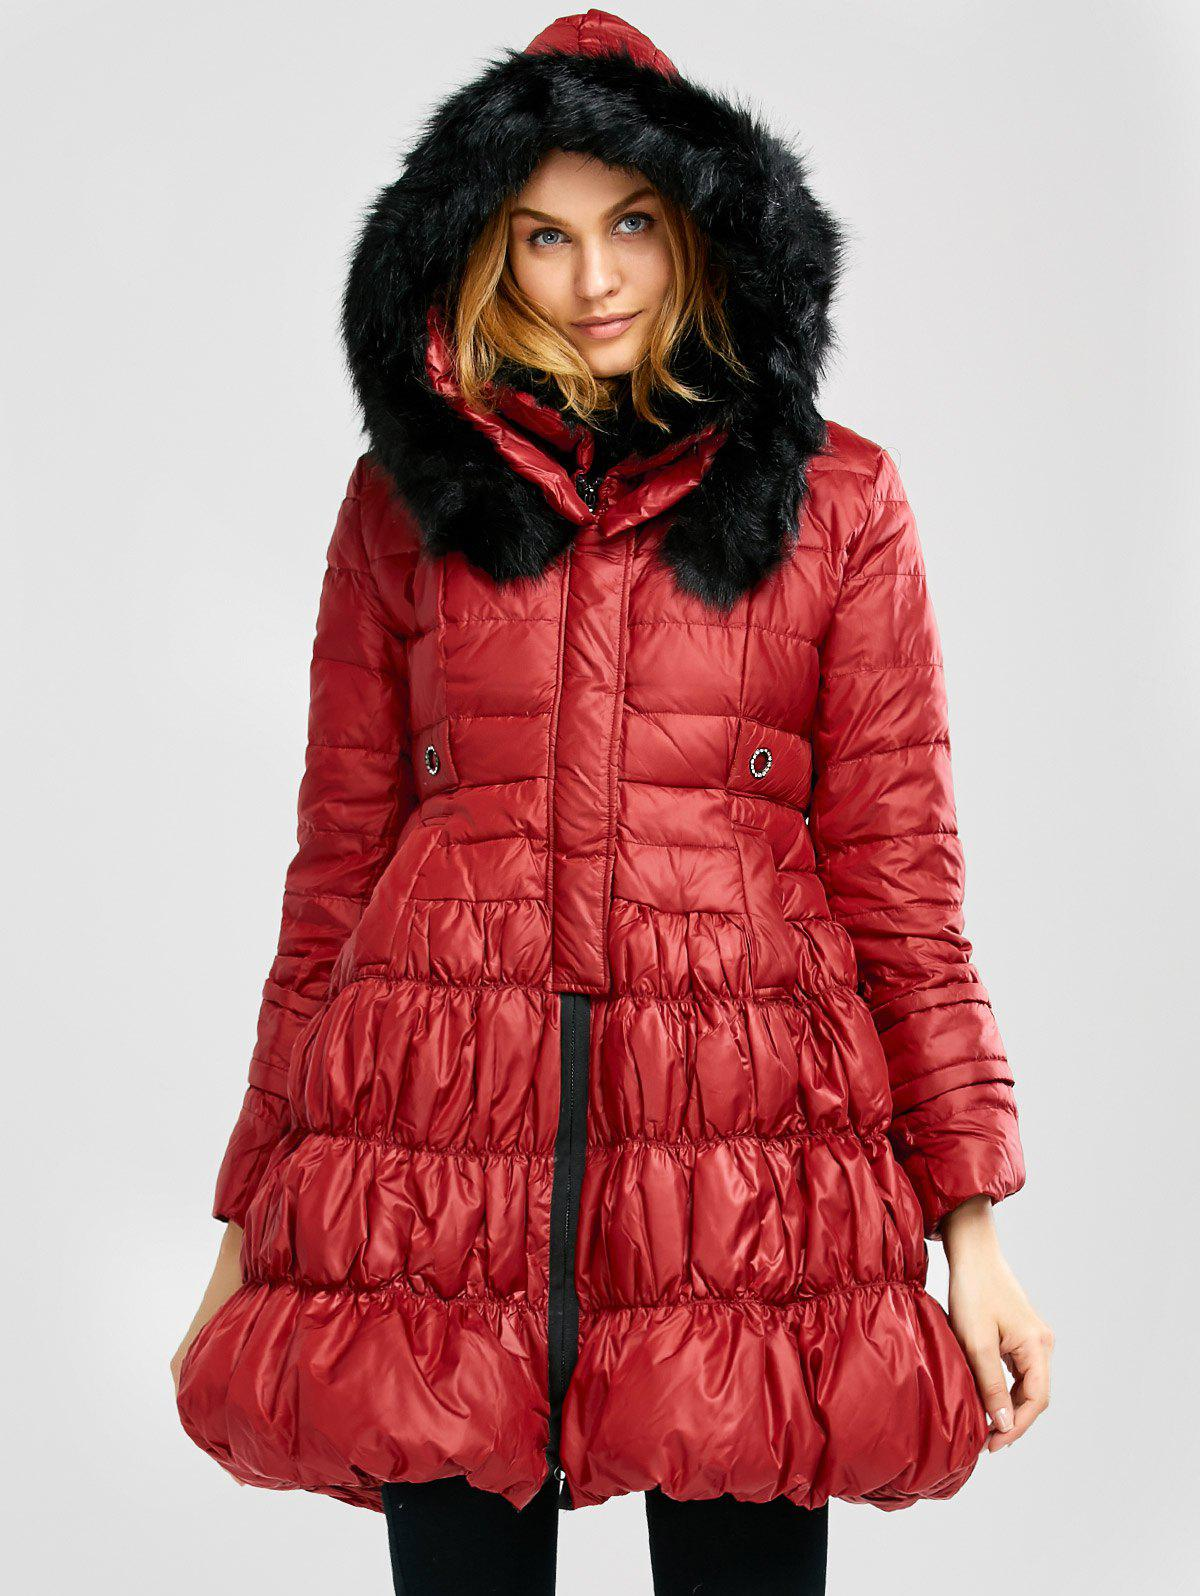 Long Skirted Down Coat With Fur Hood 5 11t youth big girls winter down jackets for the girl outerwear with fake fur hood long coat solid color manteau fille hiver